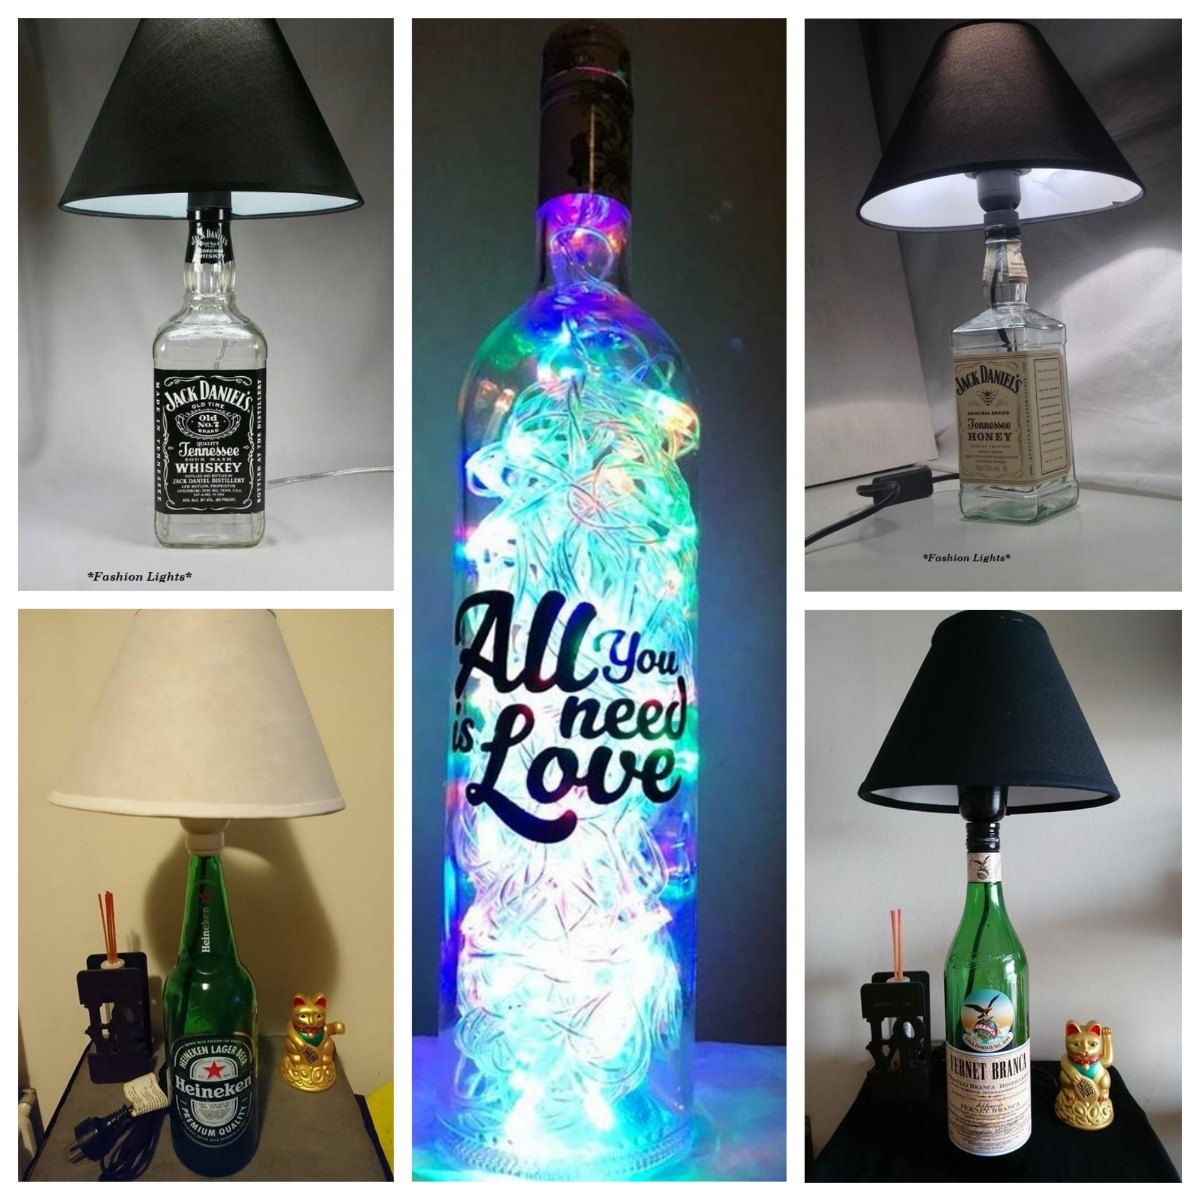 Como Hacer Lamparas Con Botellas Como Hacer Lamparas Con Botellas De Vidrio Cheap Perfect